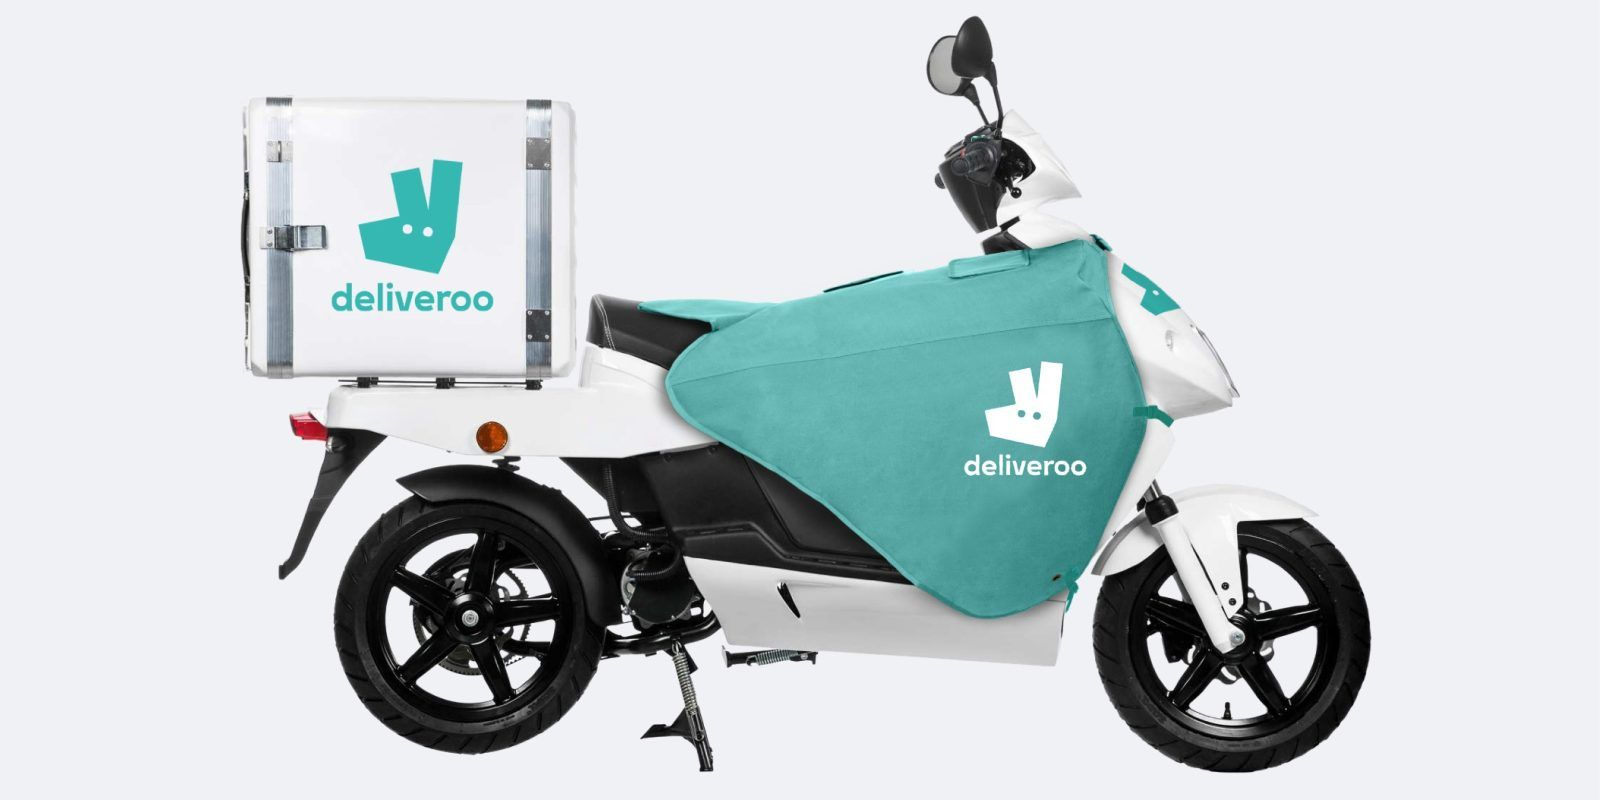 Deliveroo Is Now Renting Electric Mopeds To Delivery Riders By The